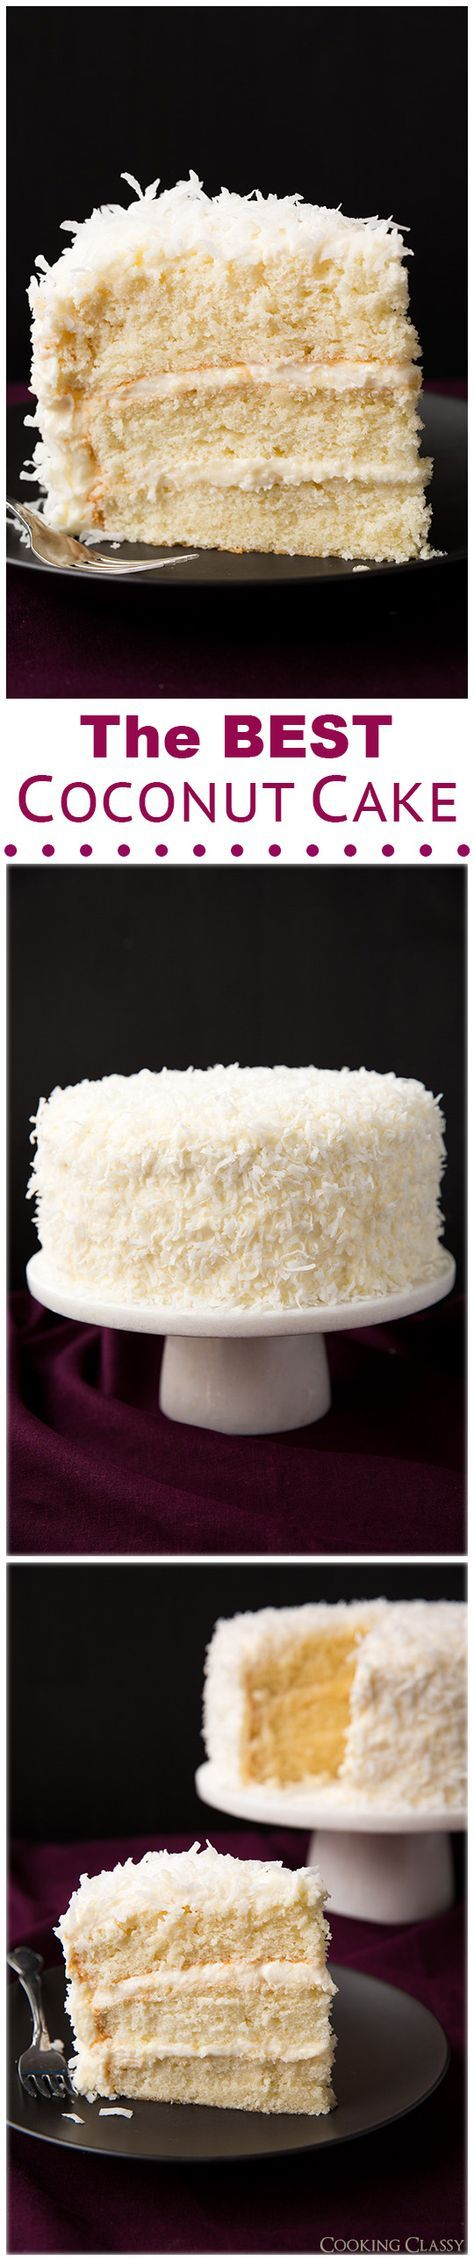 Coconut Cake - this is hands down the BEST coconut cake I've ever had!! It has gotten great reviews, you can read them below the recipe.